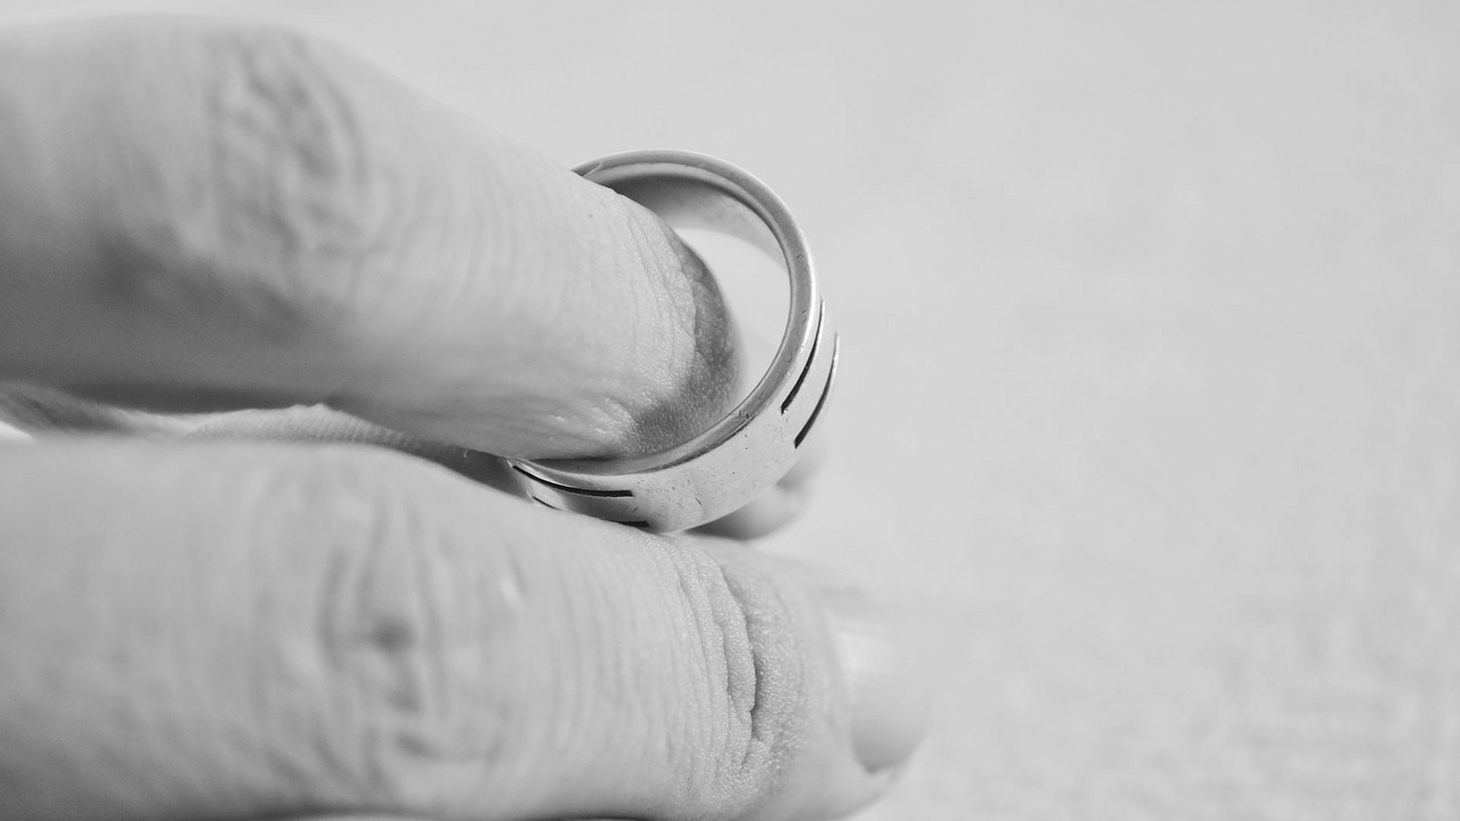 A hand with a marriage ring.